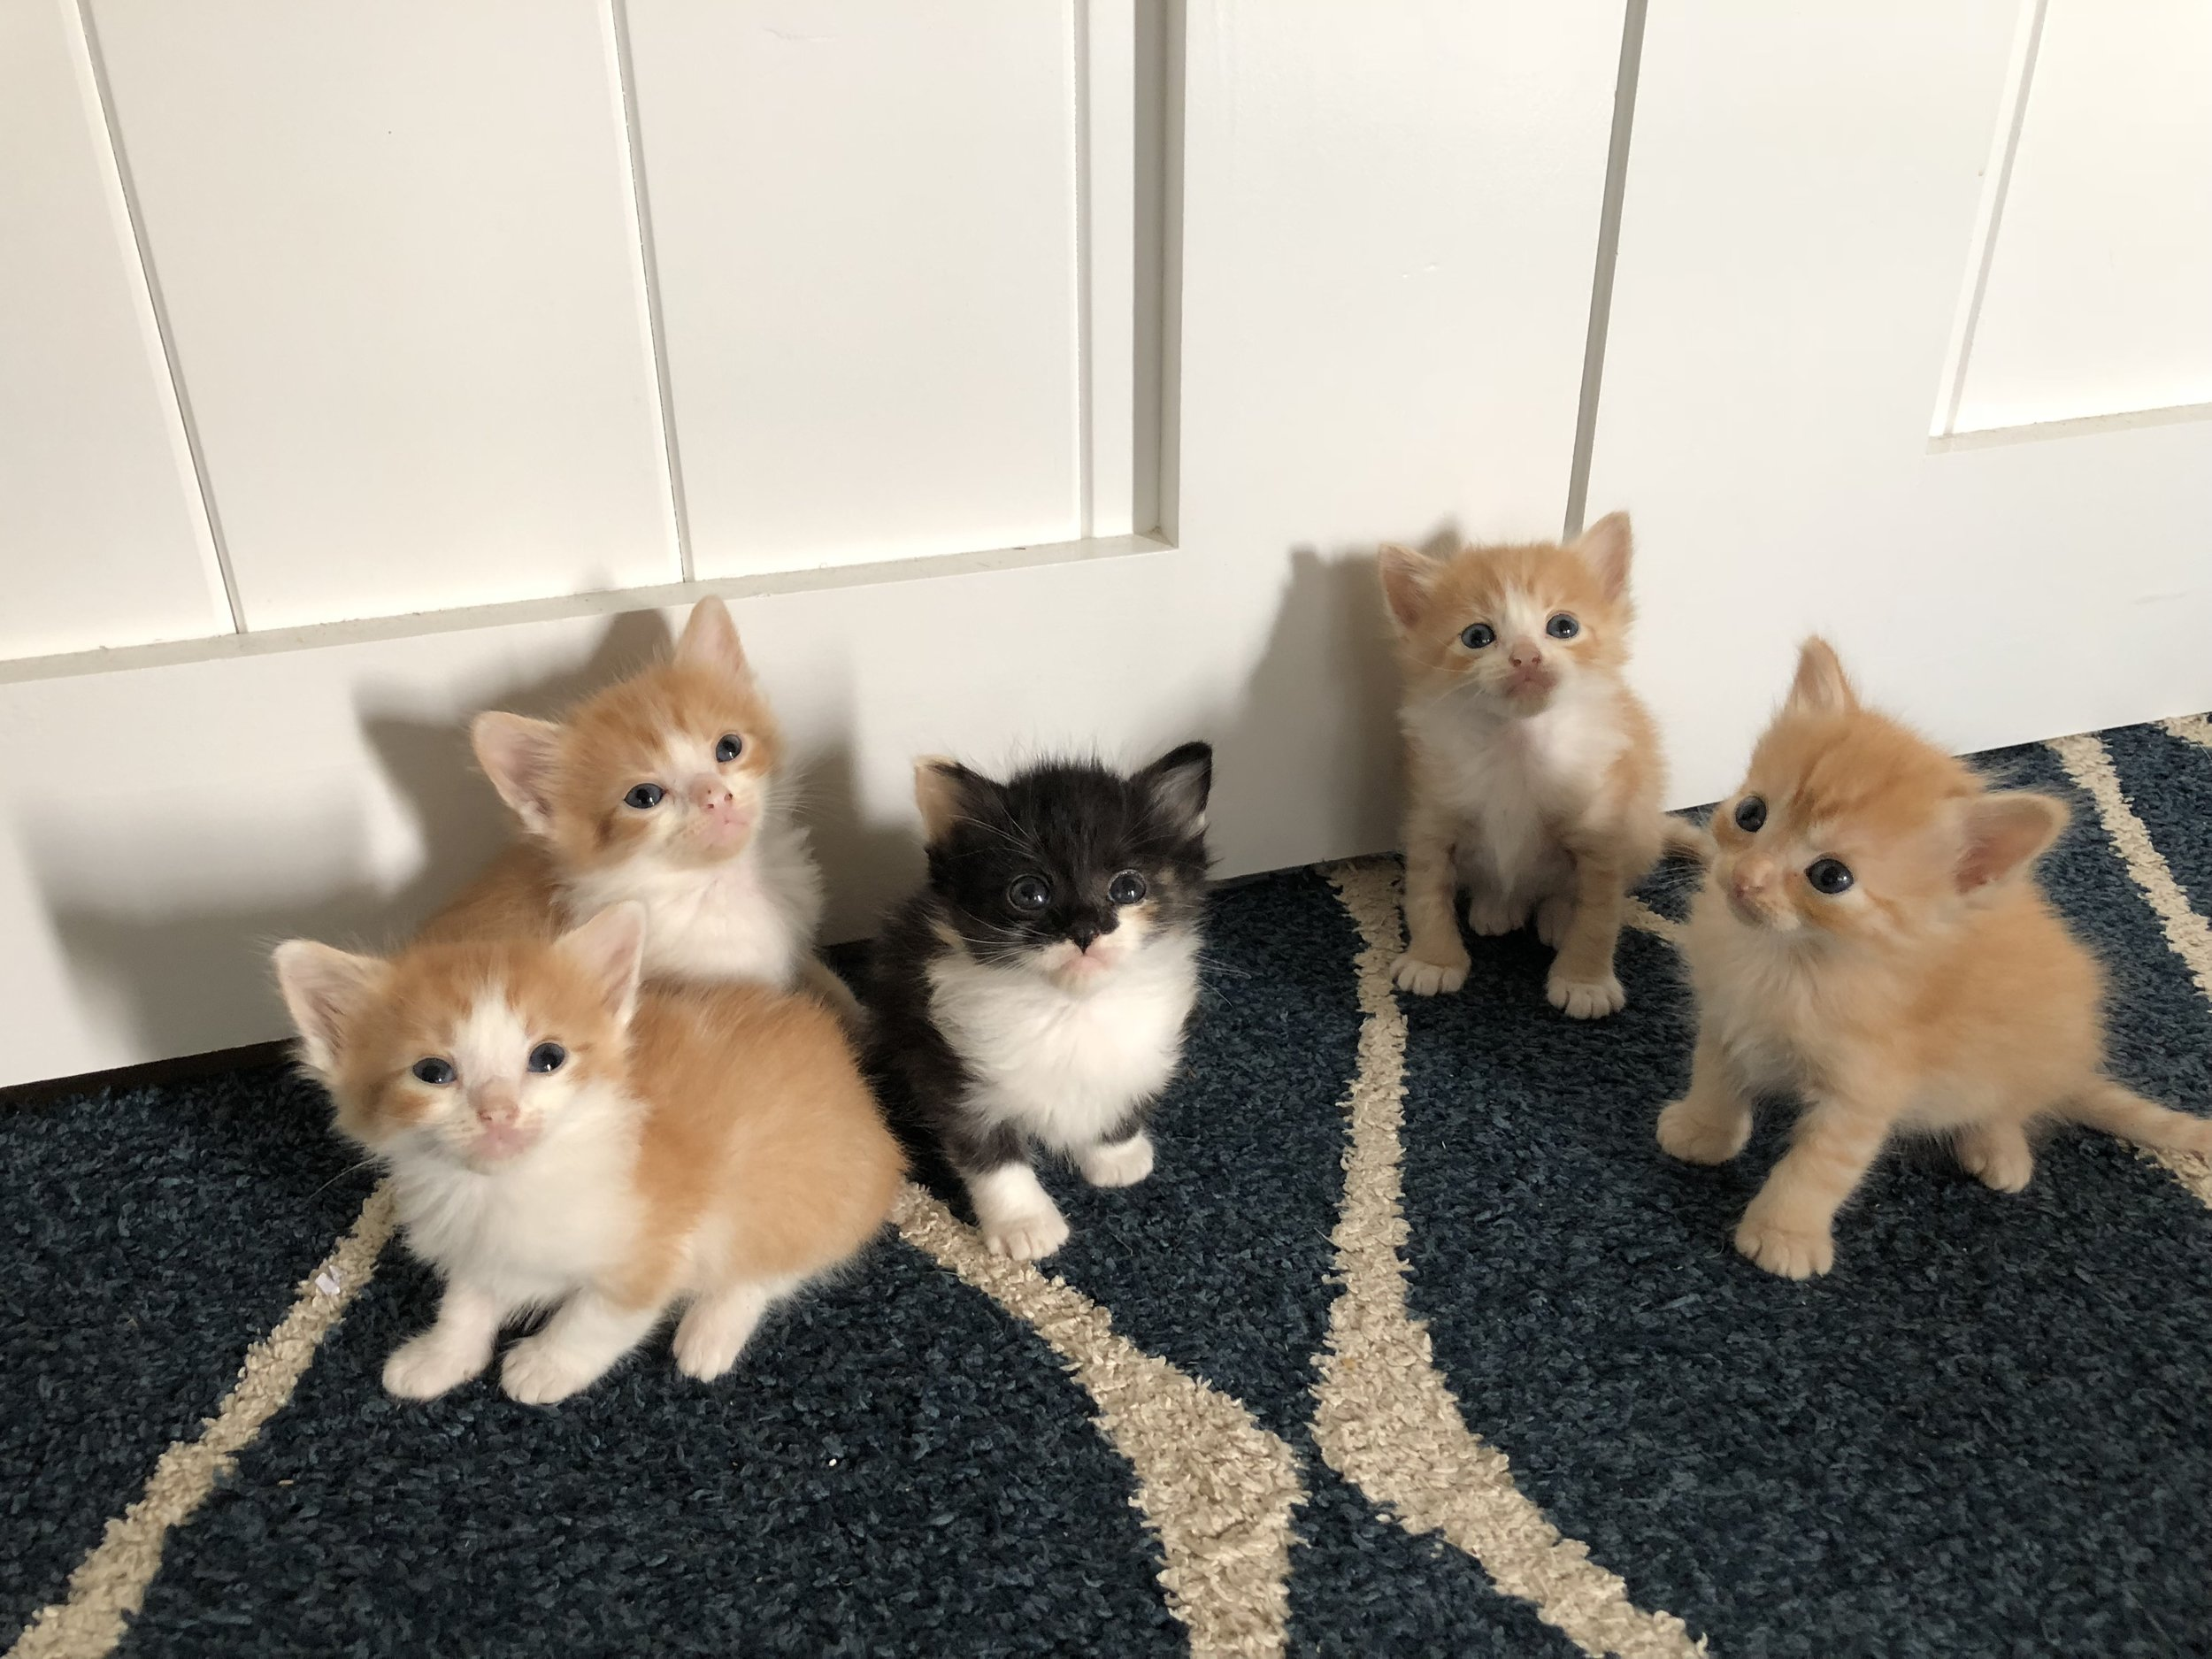 According to my daughter all the orange kitties are boys and the one in the middle, the black and white one, with orange spots is the girl :)